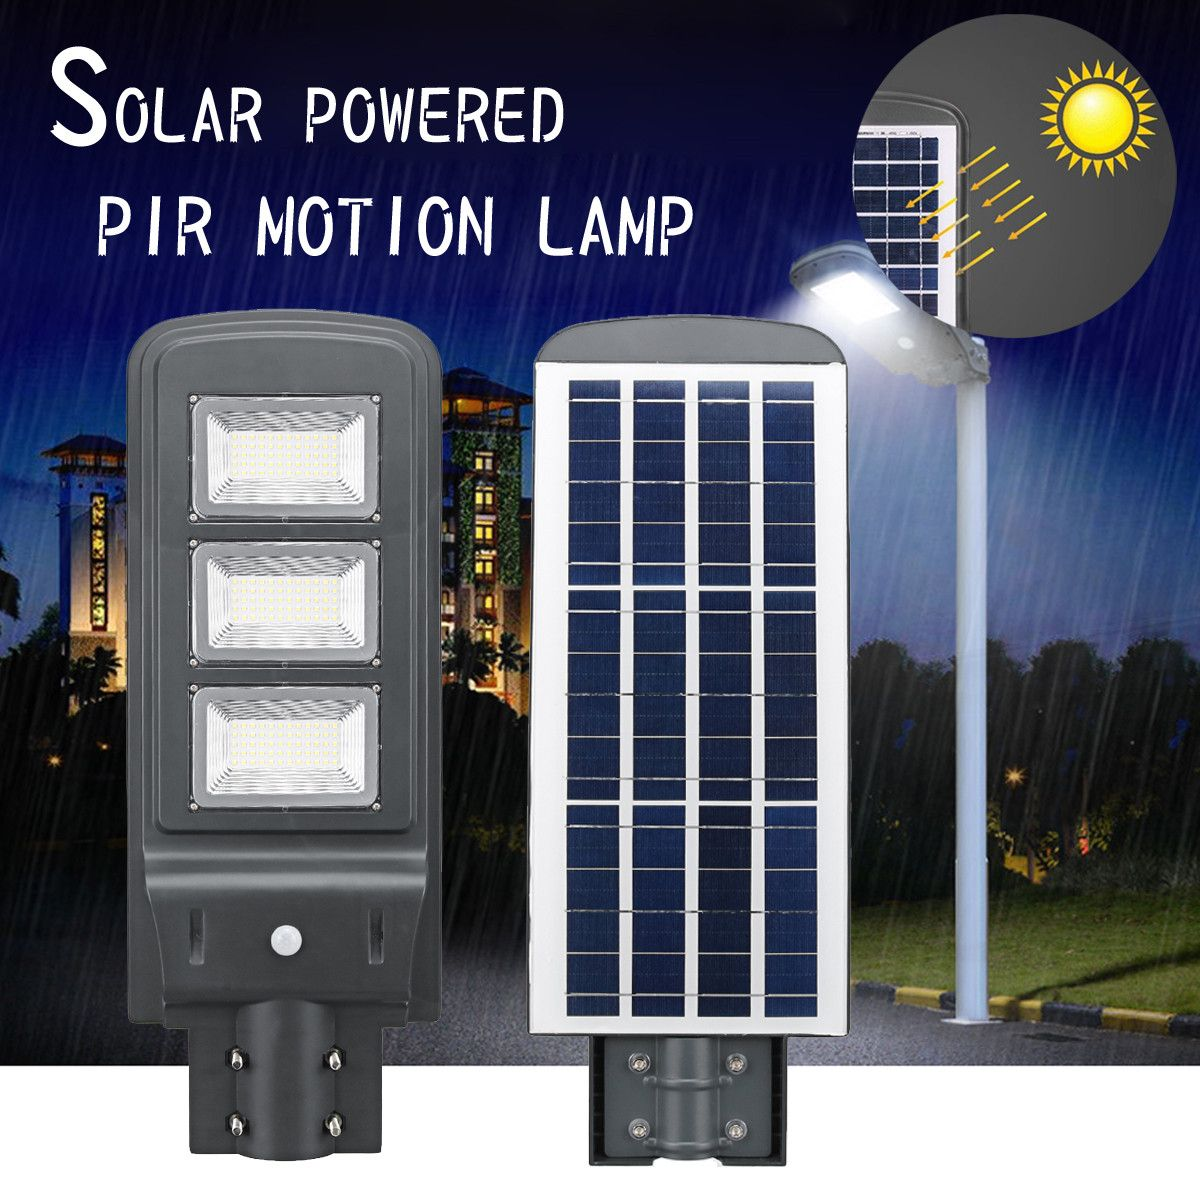 All-in-one 60W Solar Powered Lamp Solar Panel Lighting Light Control + PIR Motion Sensor Waterproof for Outdoor Street LightAll-in-one 60W Solar Powered Lamp Solar Panel Lighting Light Control + PIR Motion Sensor Waterproof for Outdoor Street Light